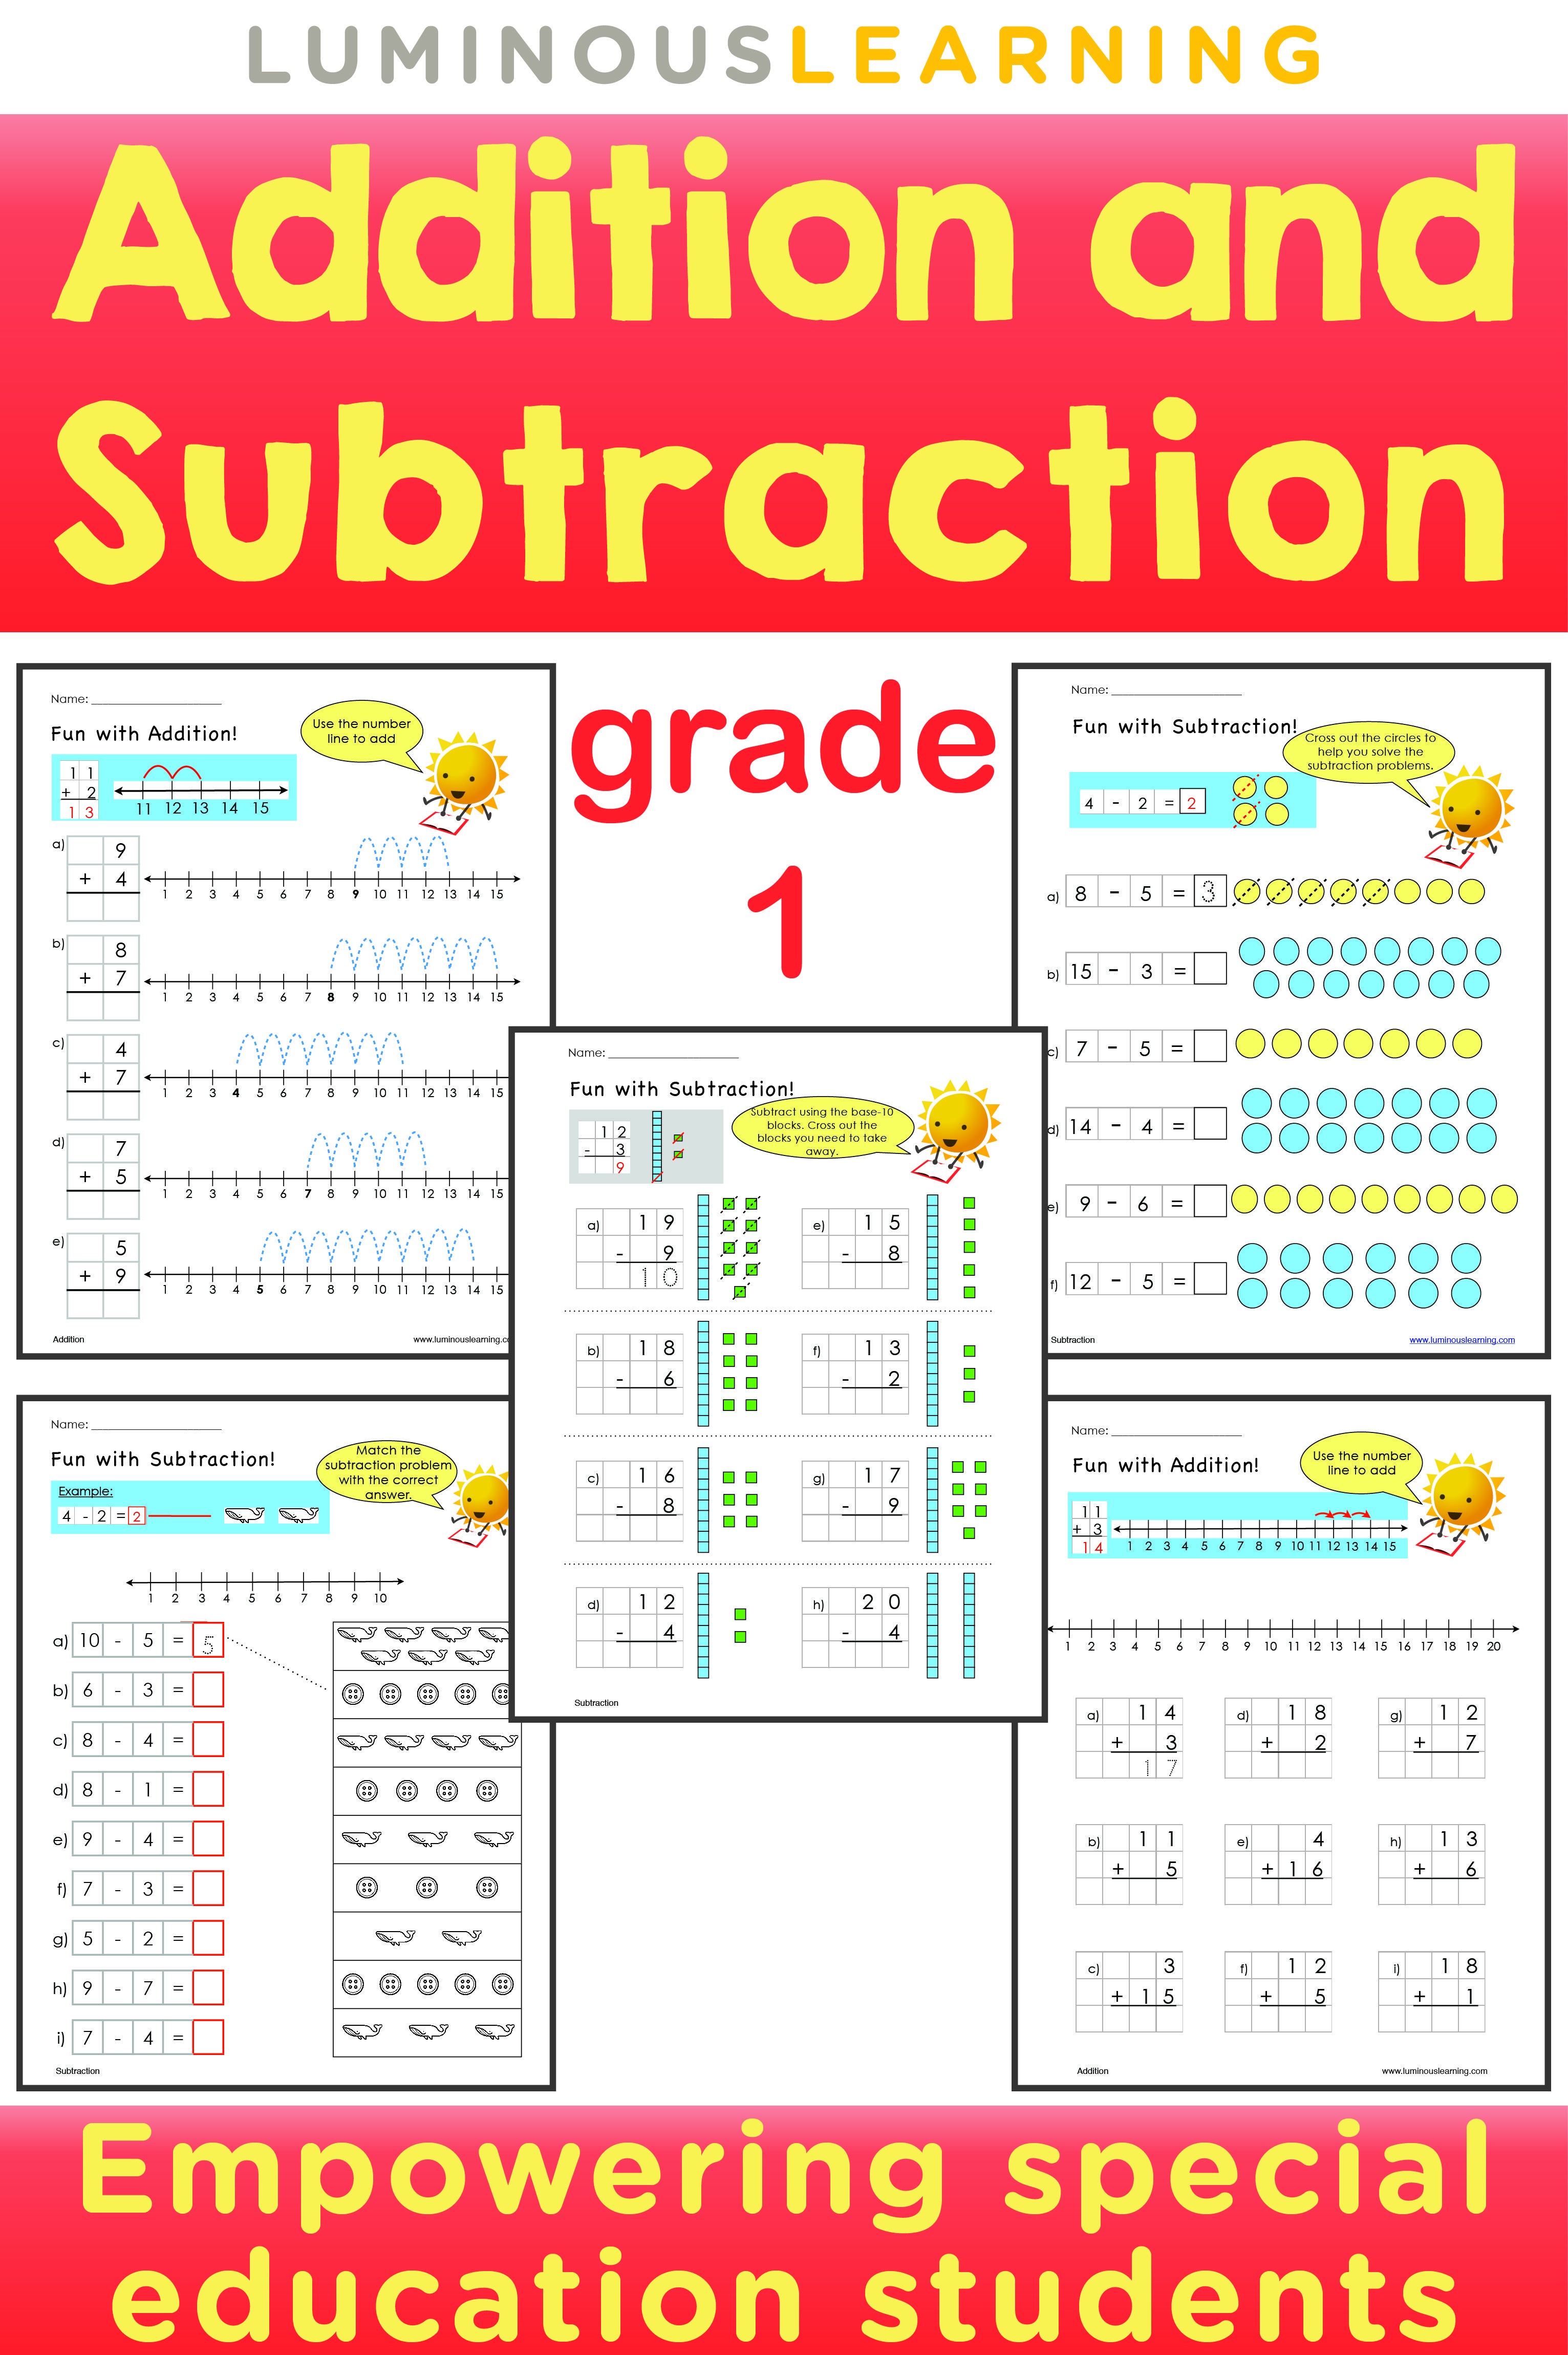 Luminous Learning Grade 1 Addition and Subtraction workbook empowers ...